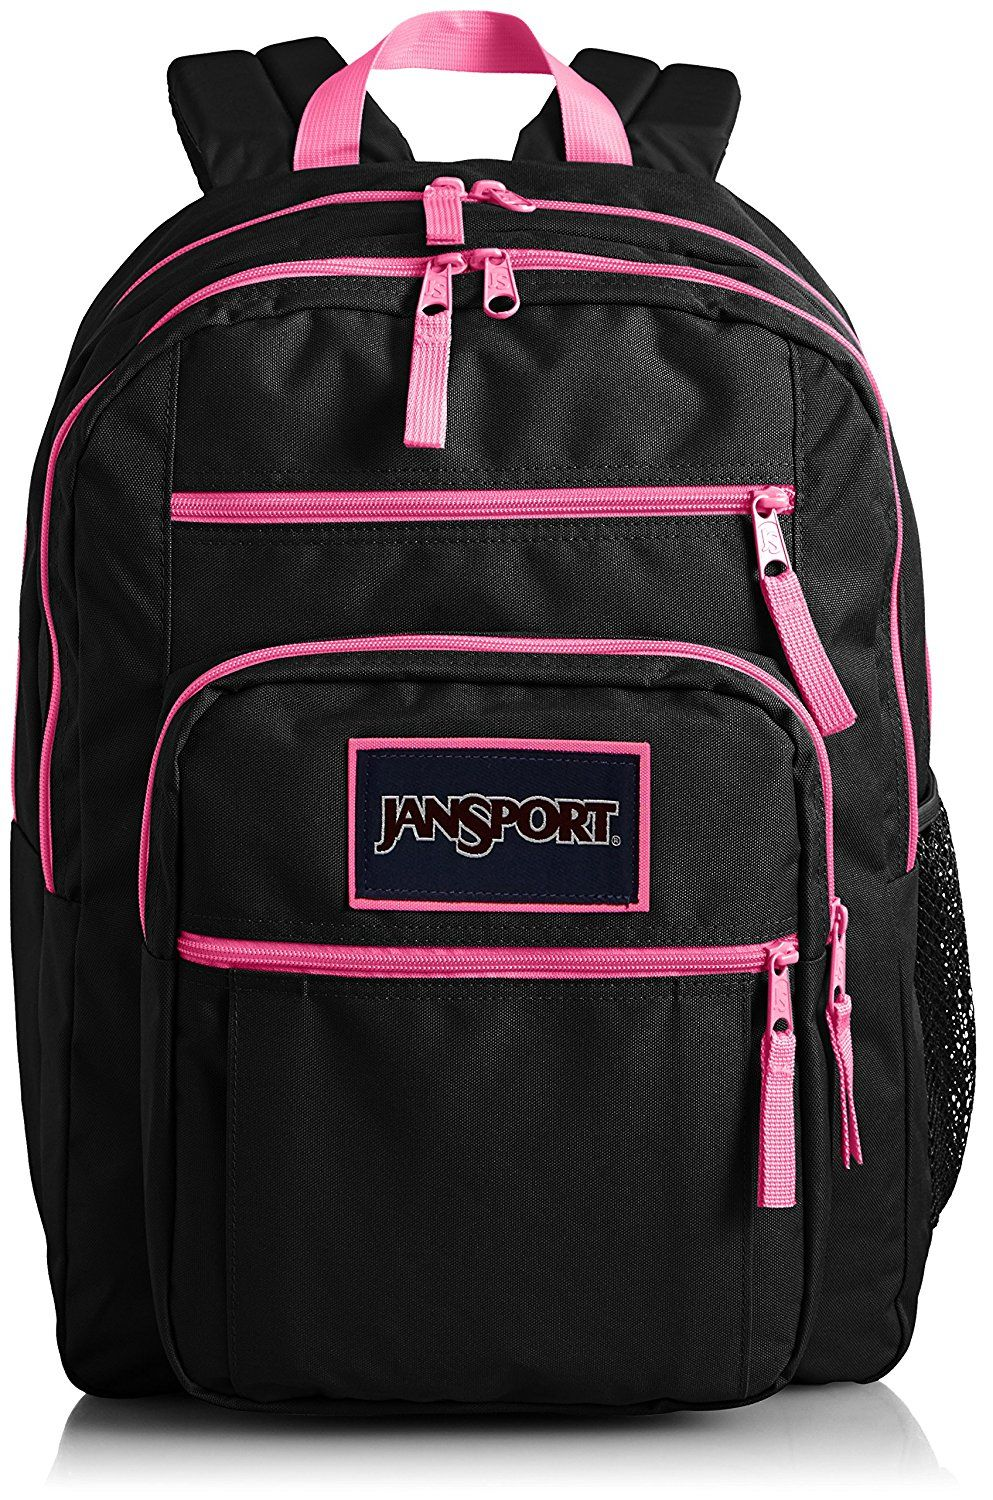 6495639981c0 Big Student Backpack Jansport Review- Fenix Toulouse Handball